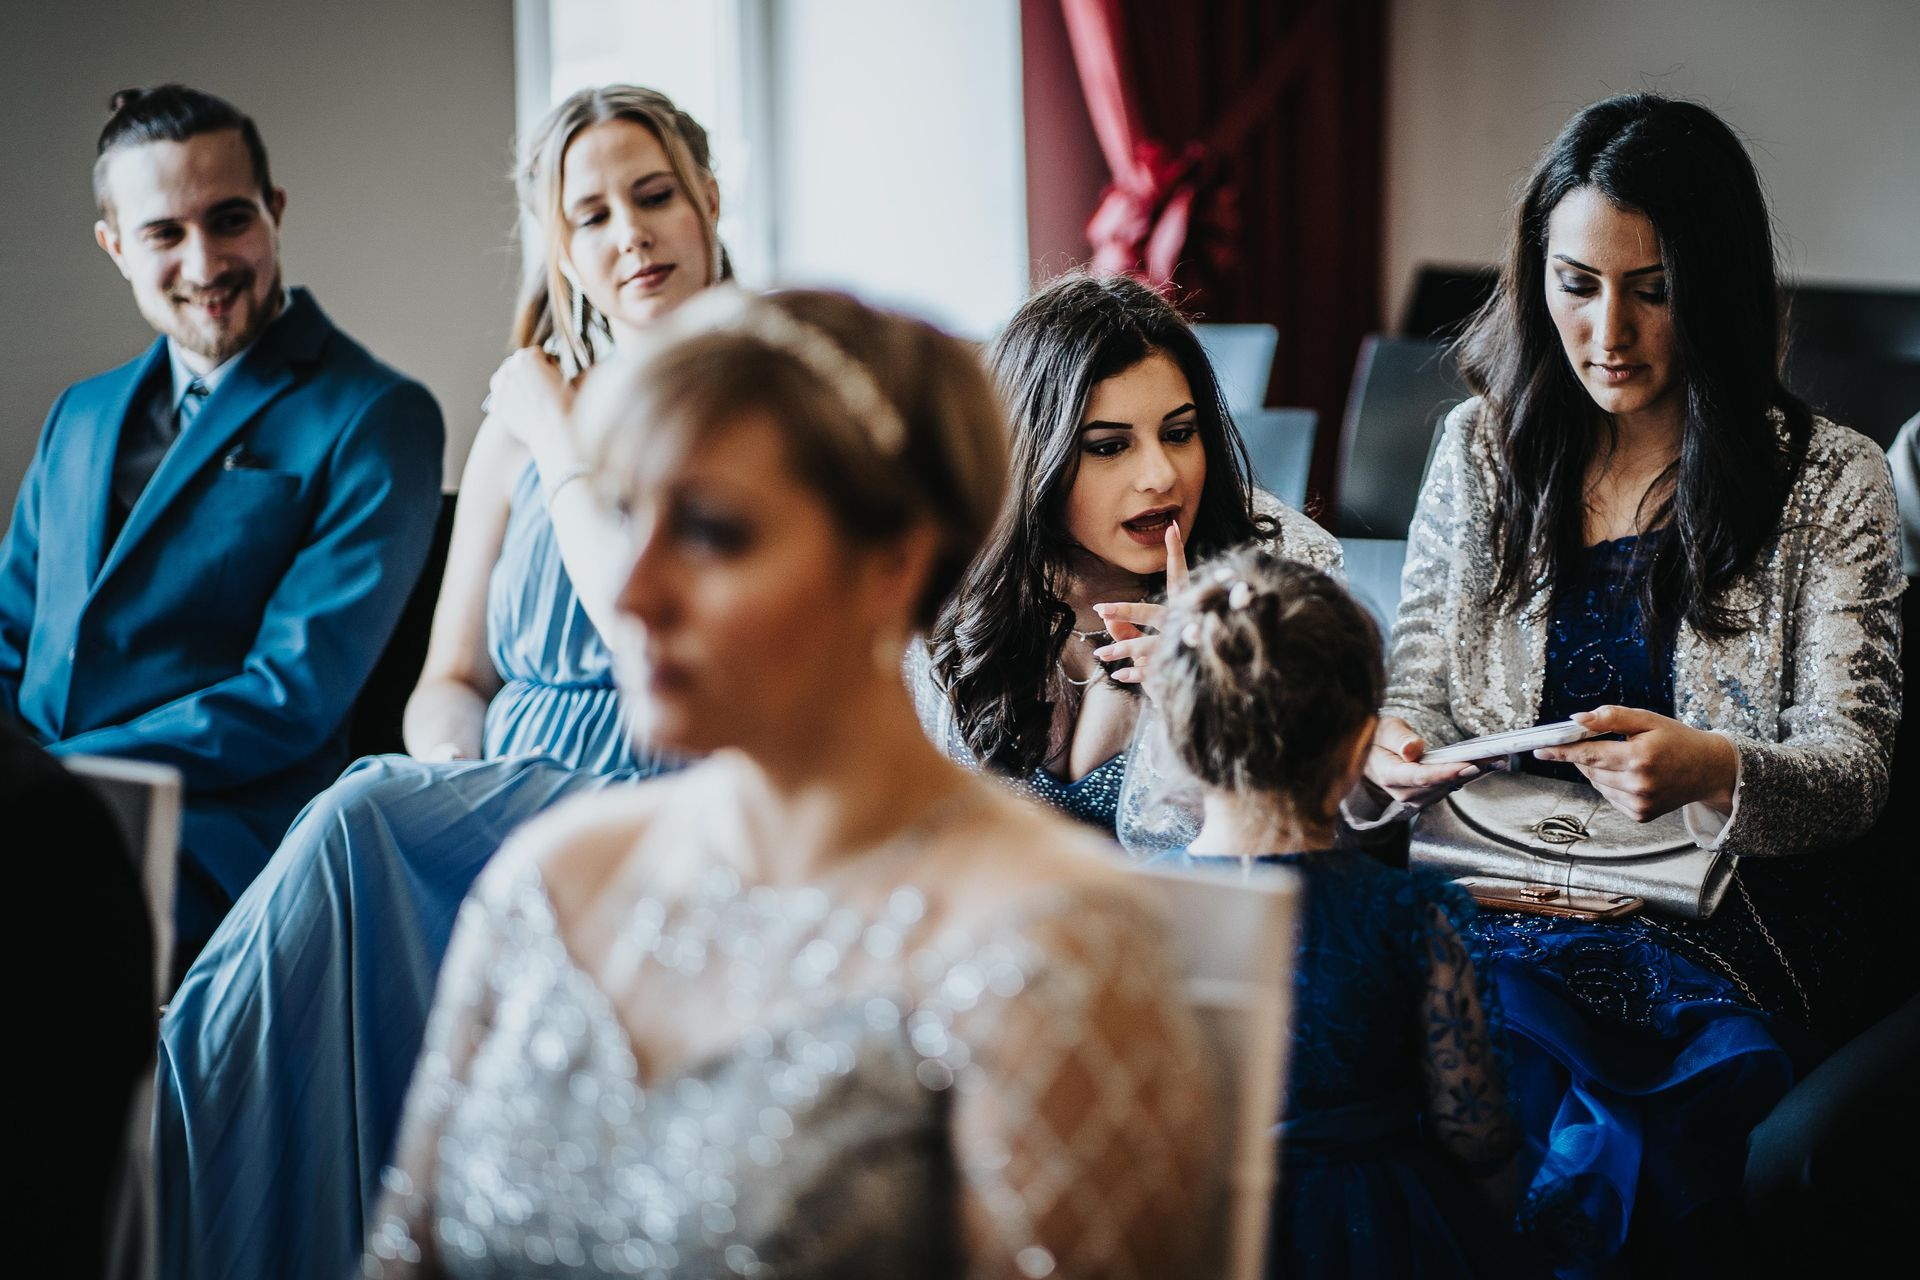 Standesamt Ebersbach small elopement ceremony pictures | Family members remind the bride's young daughter to stay quiet